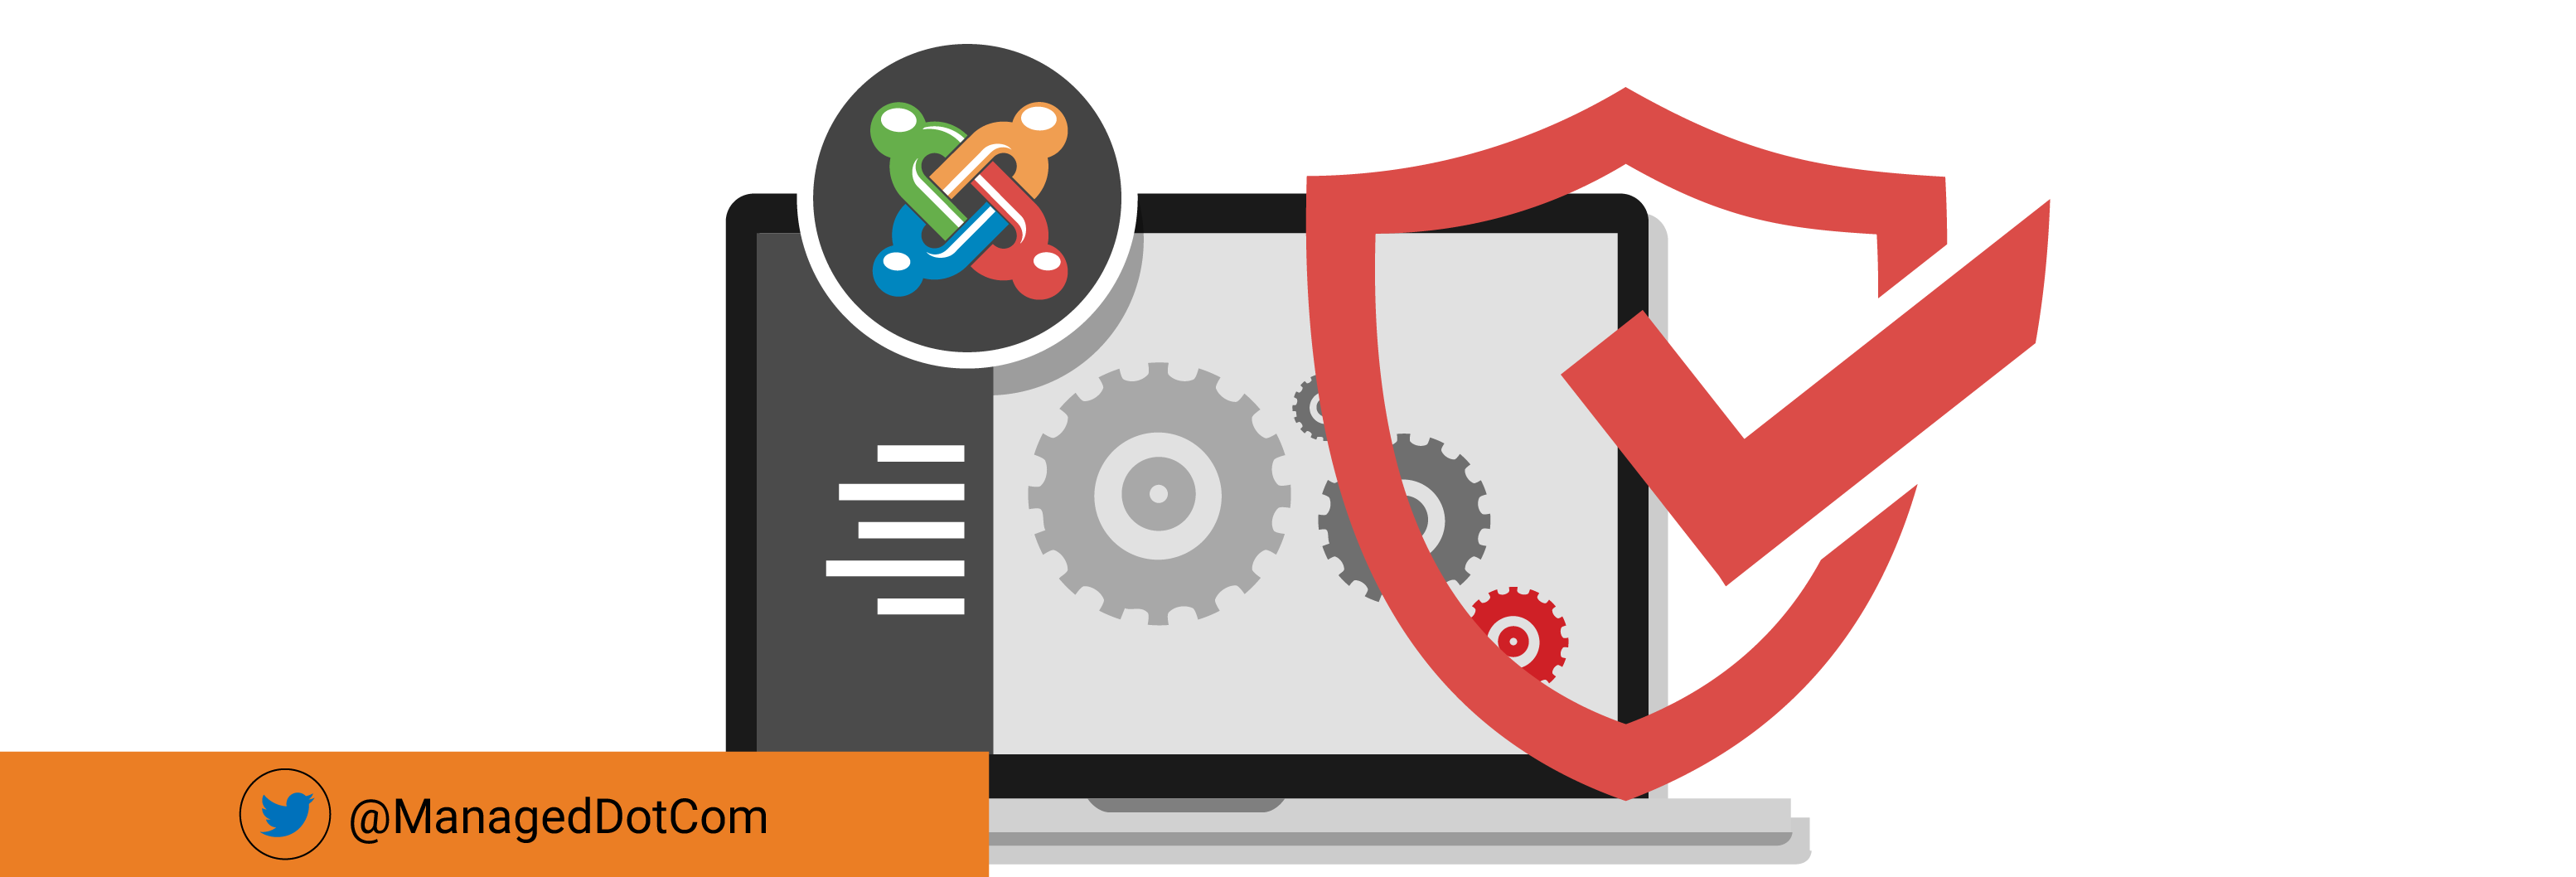 Joomla Secure And Latest Versions 1 Frontline